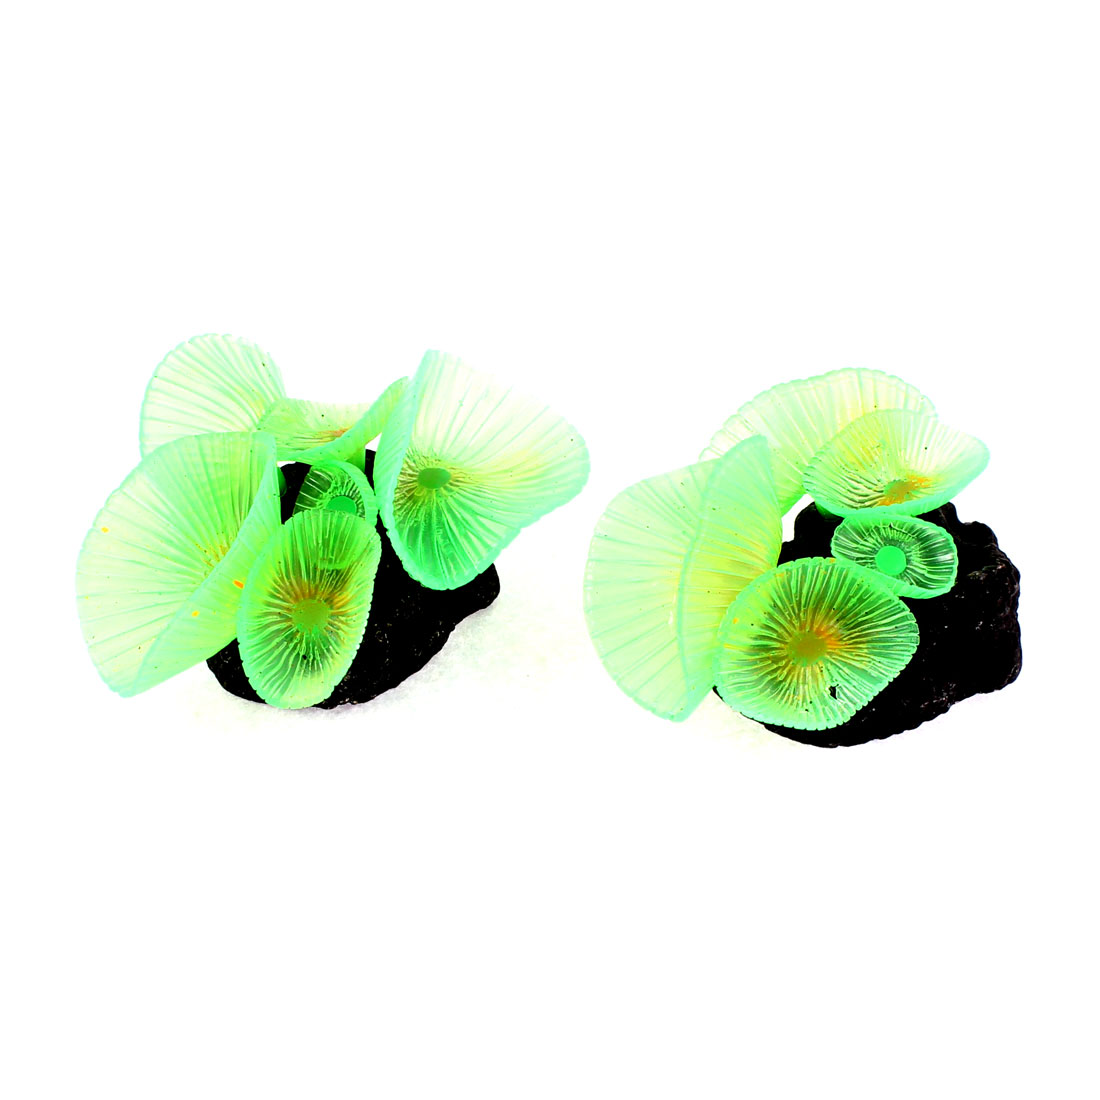 Aquarium Ceramic Base Round Leaves Plastic Plant Decor Green 2Pcs